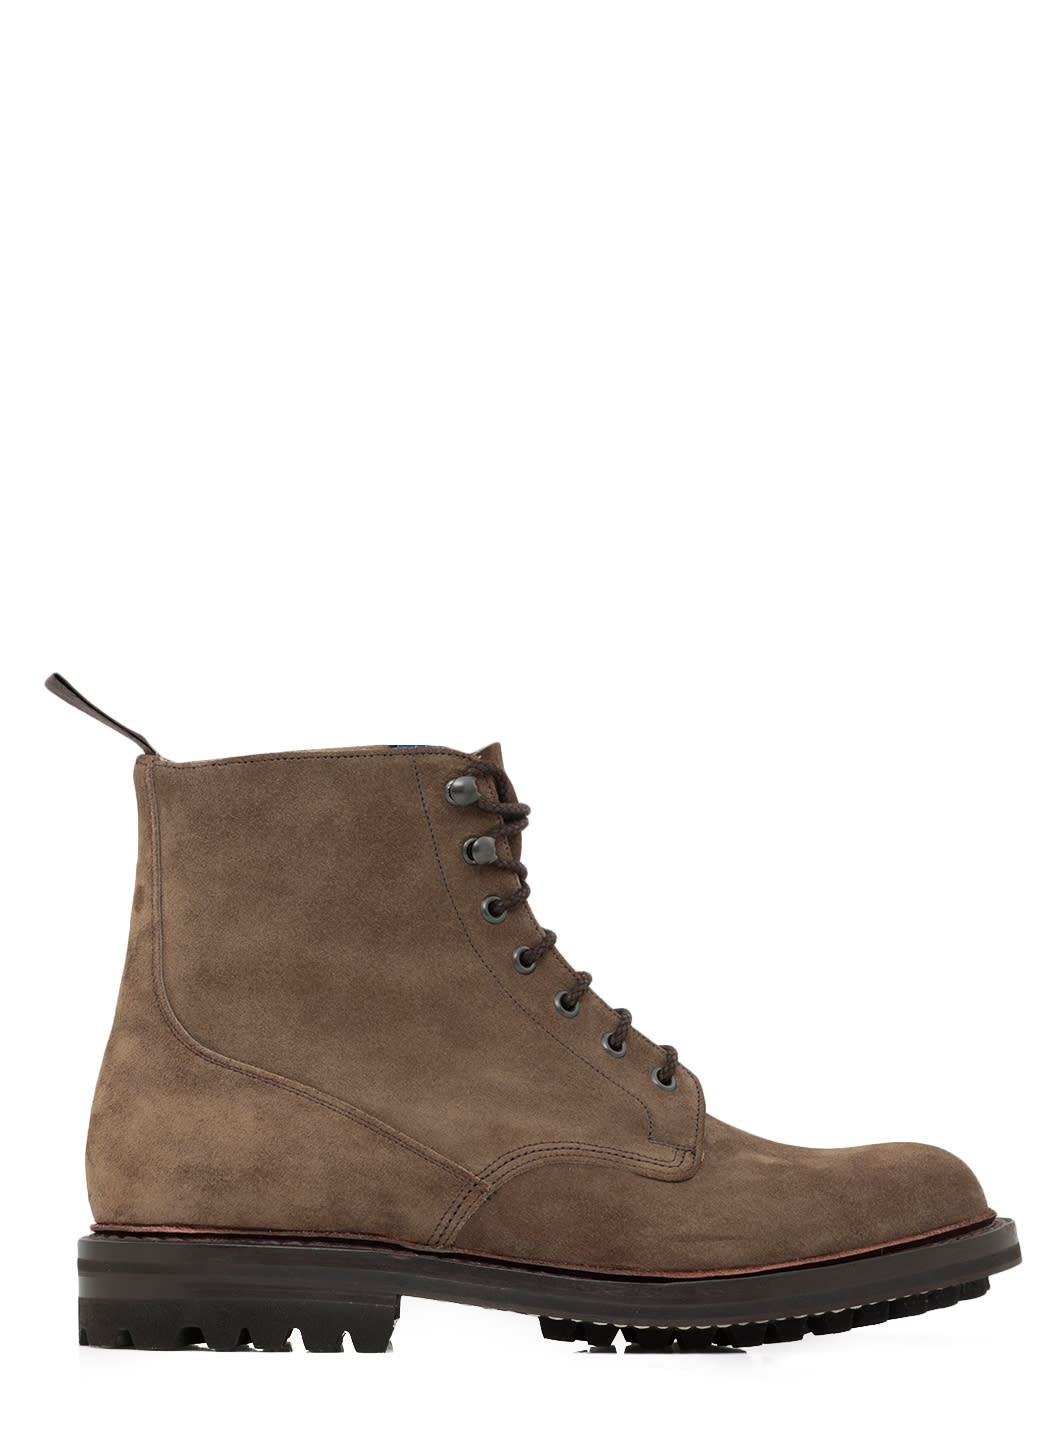 Churchs Leather Boots